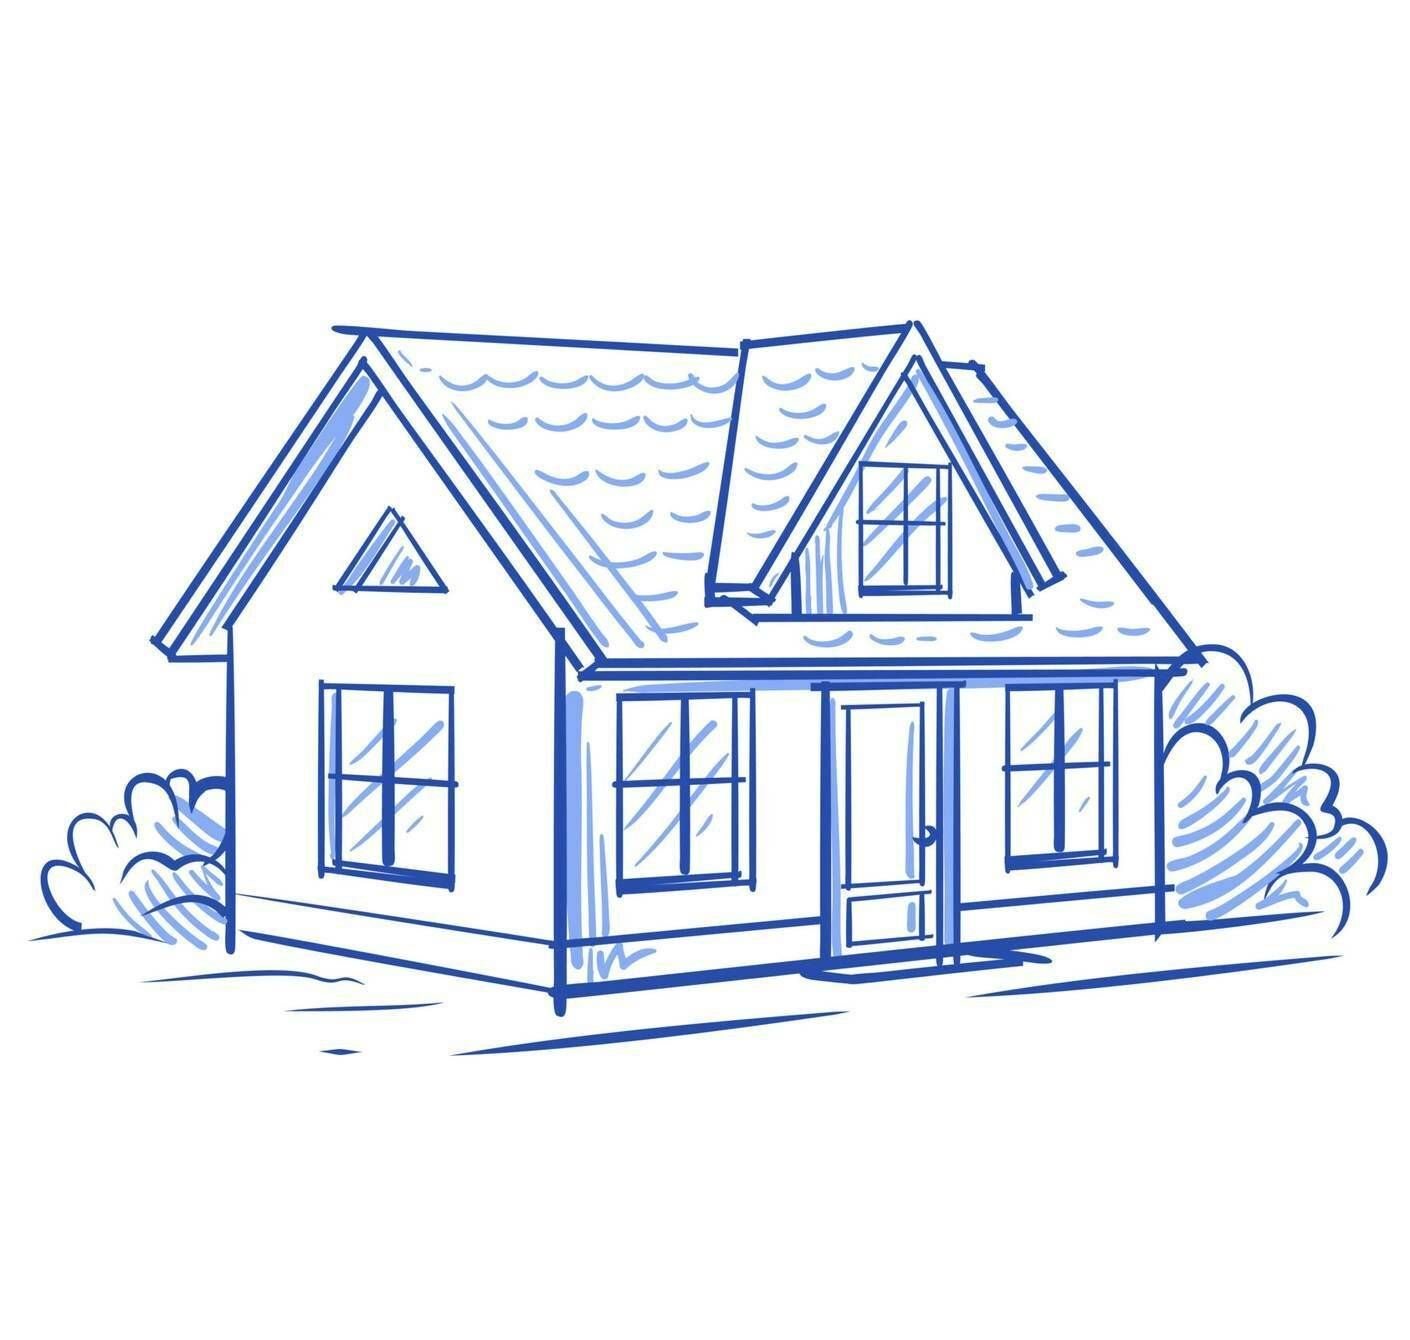 Illustration of a small house surrounded by bushes, Rewire, homebuyers, PBS